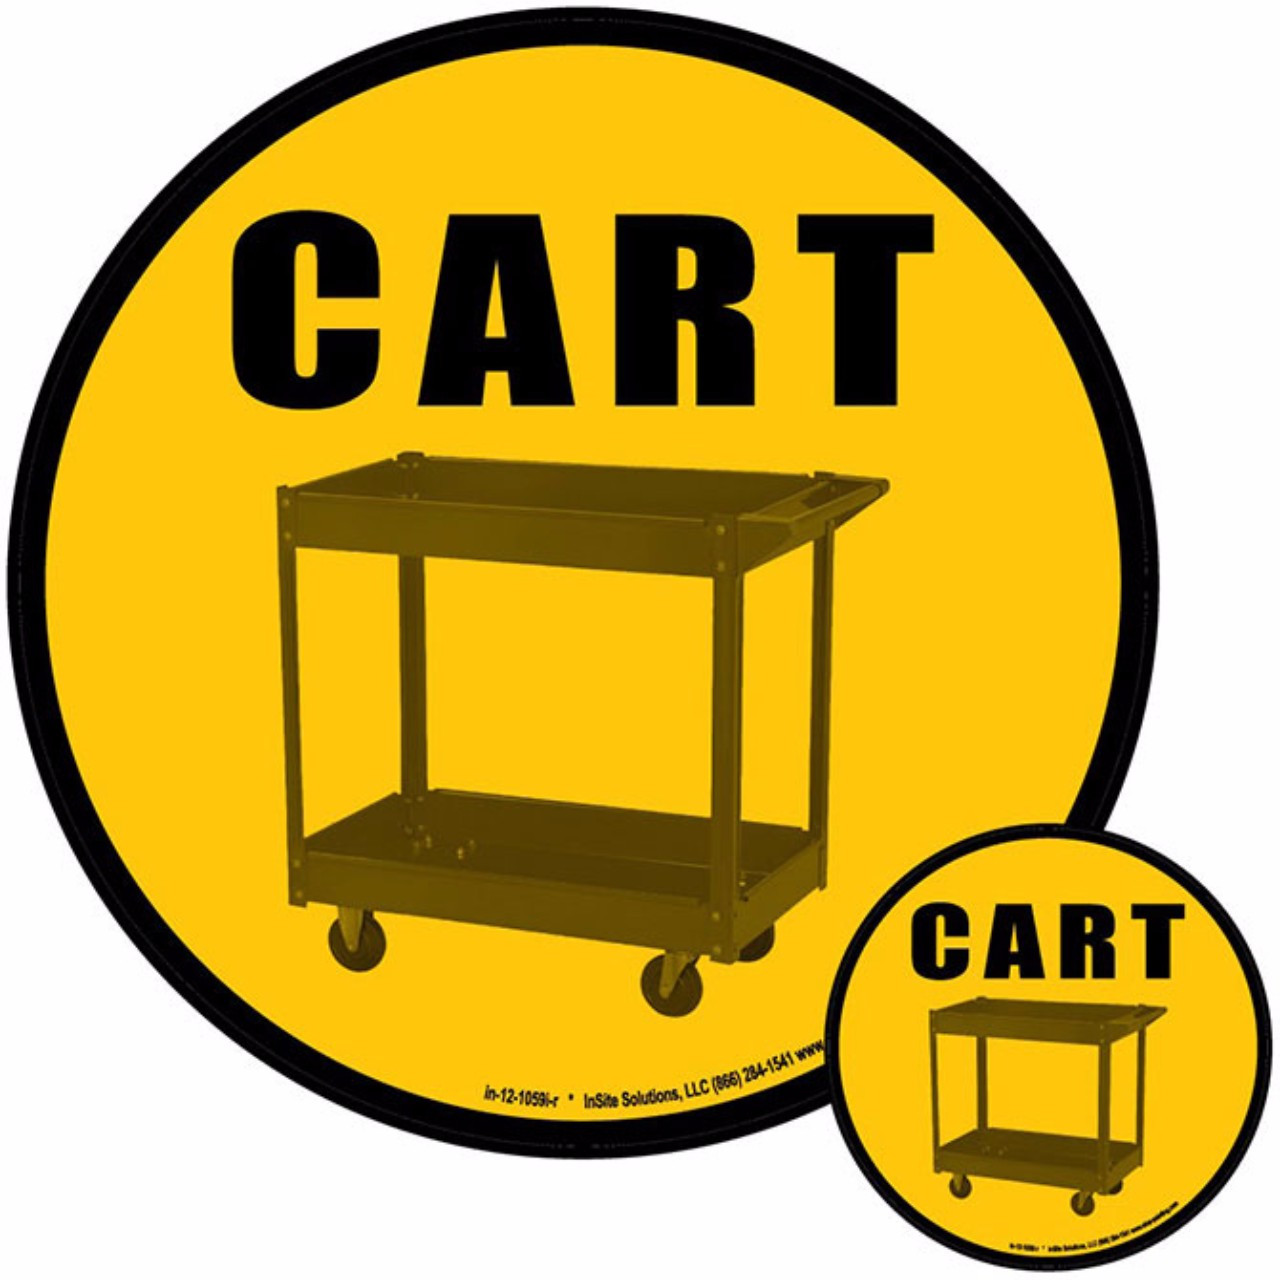 Cart Floor Sign 5s Identification Systems